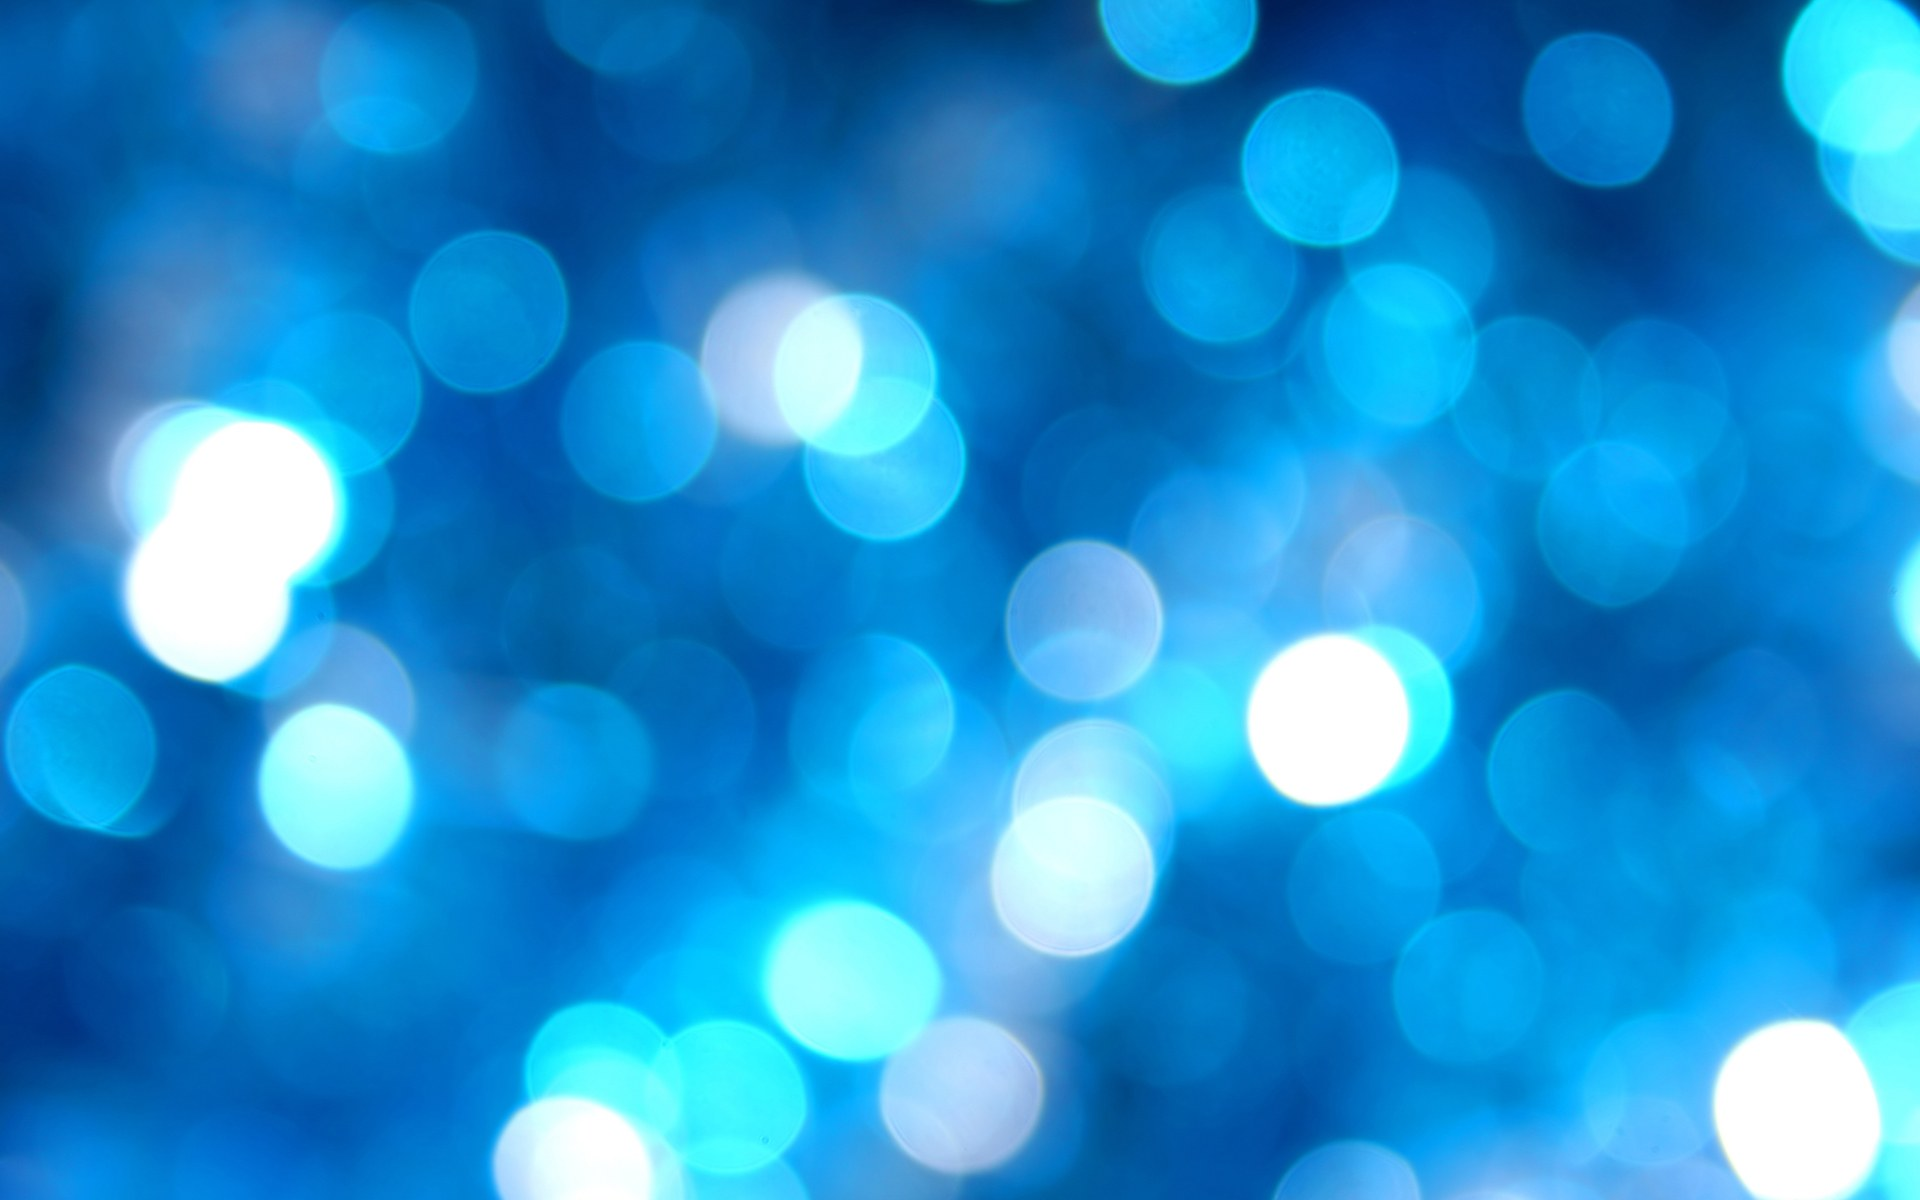 Blue Girly Backgrounds   HD Wallpapers 1920x1200